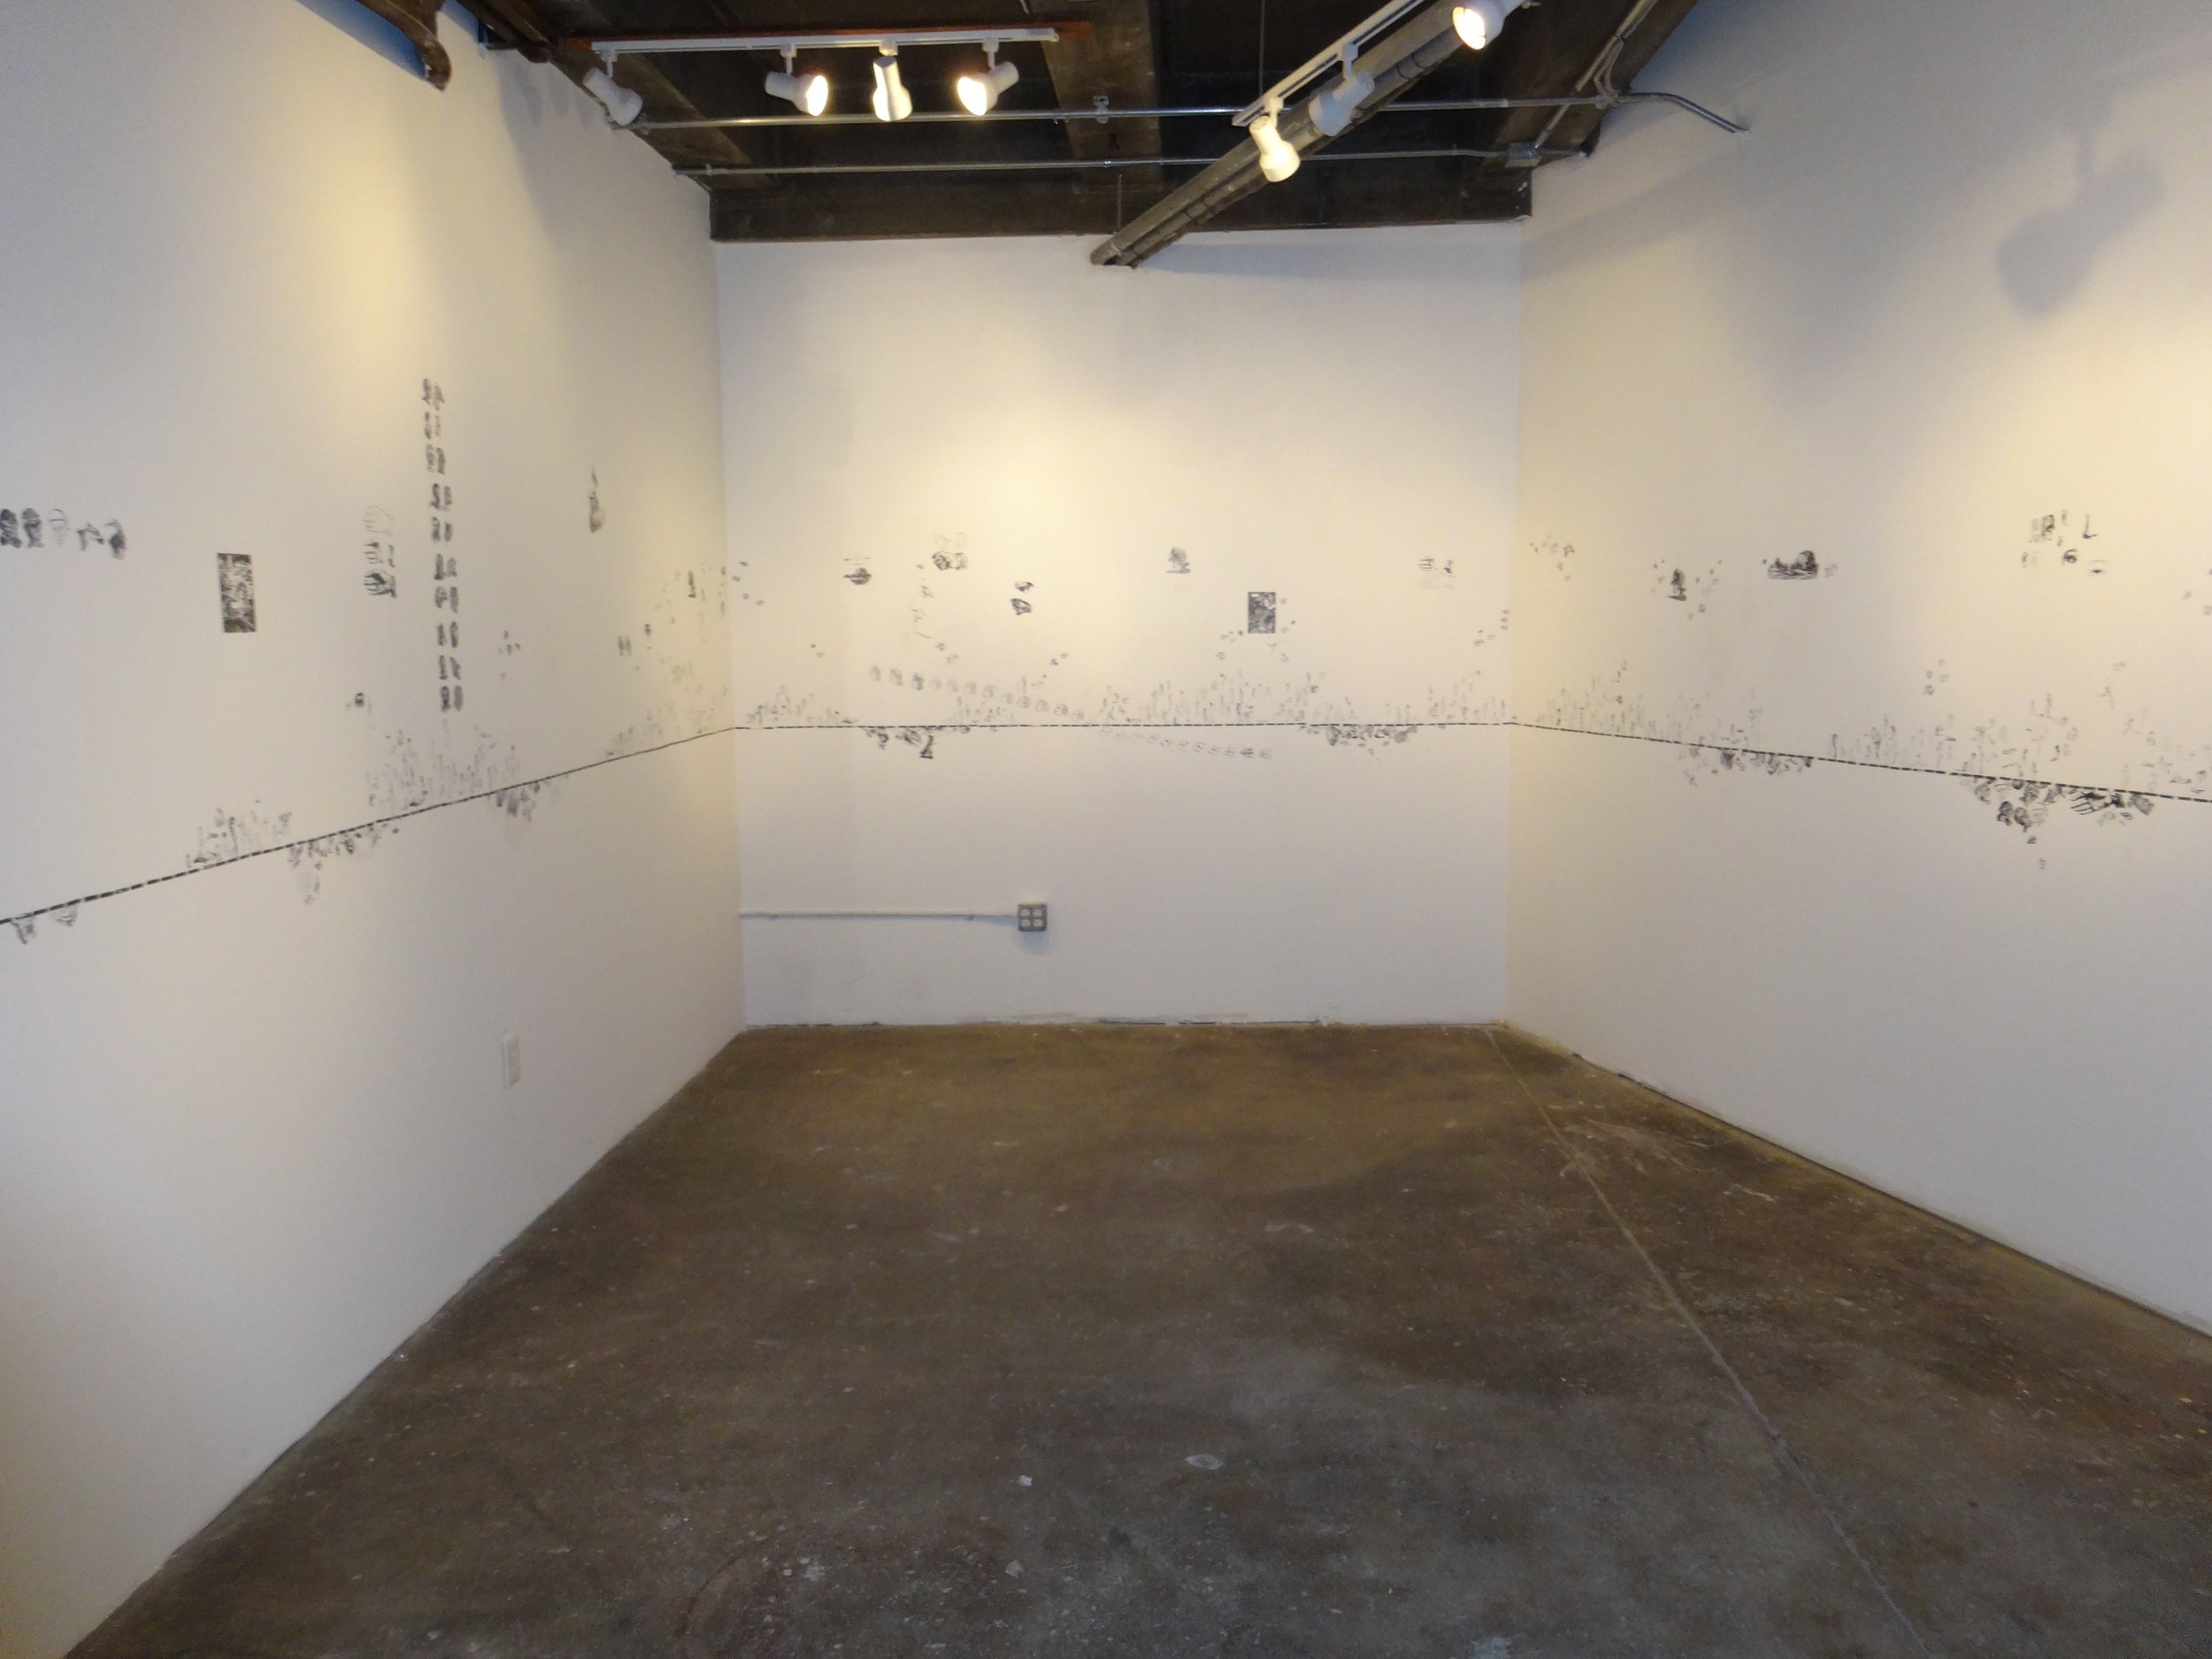 installation view of LIne of Lode